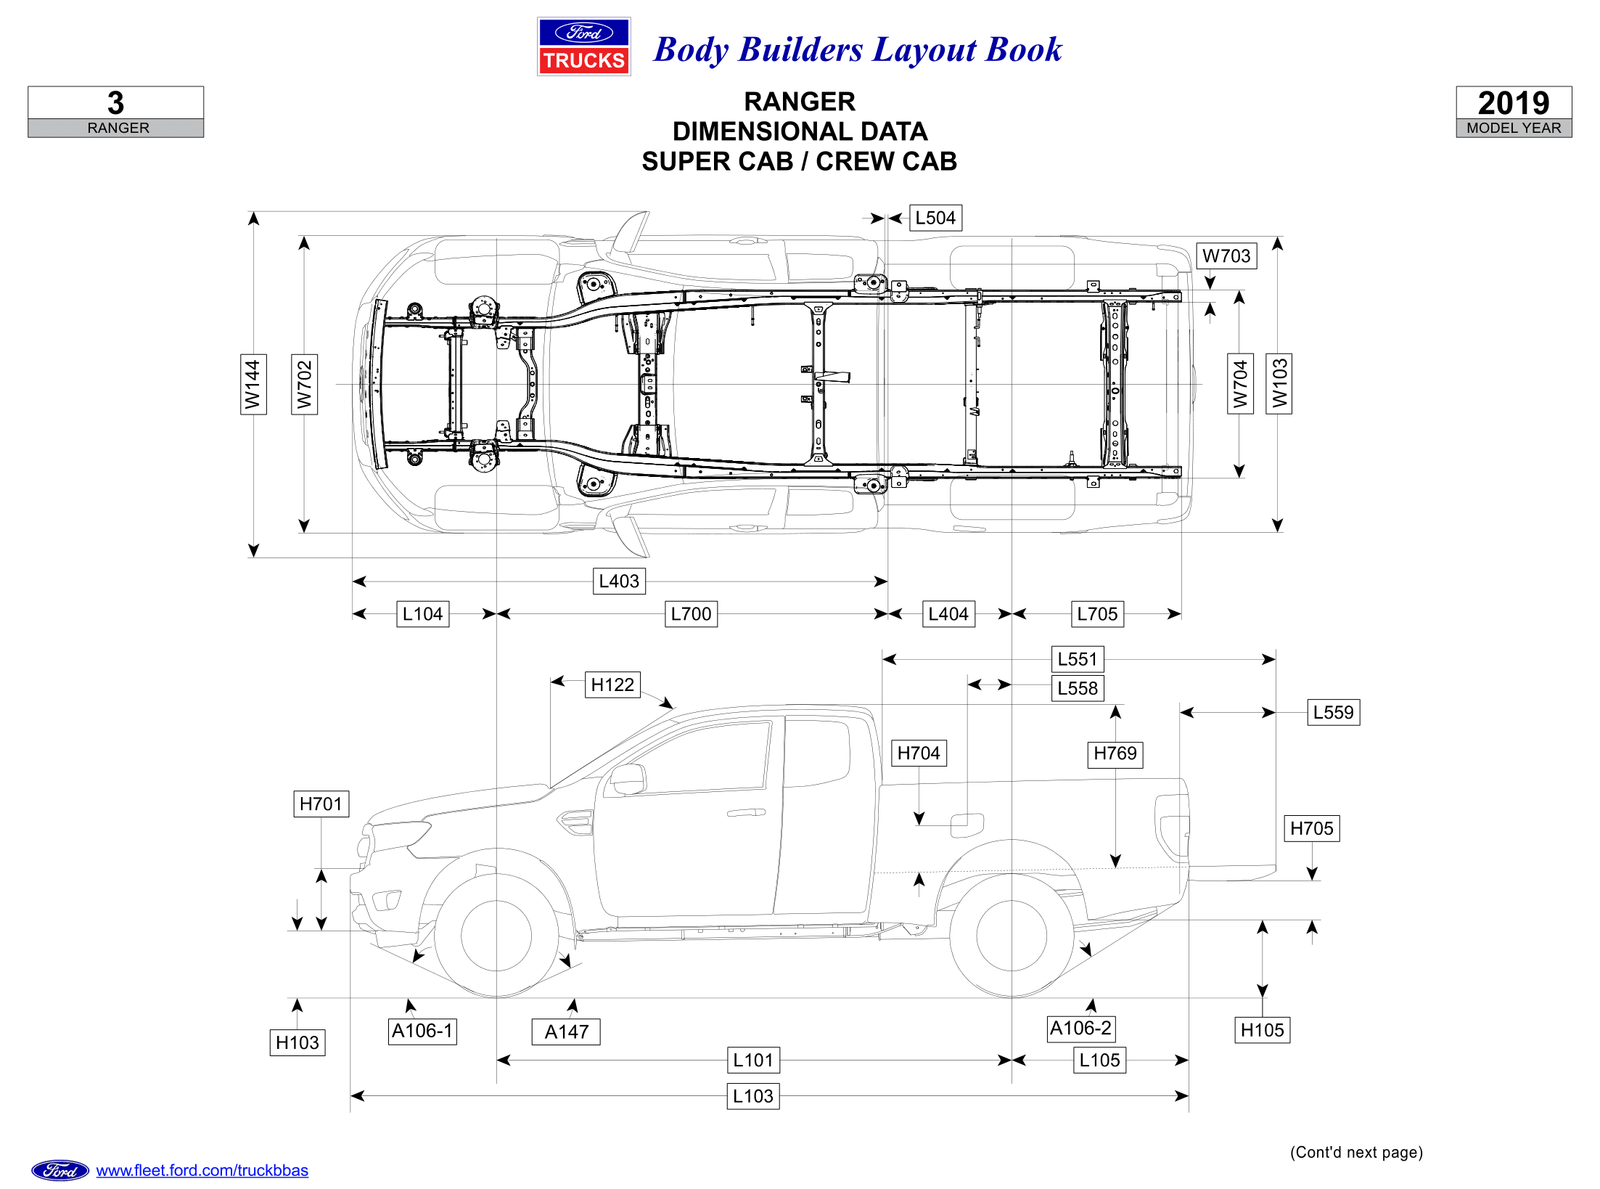 hight resolution of 2019 ford ranger body builders layout book 04 png